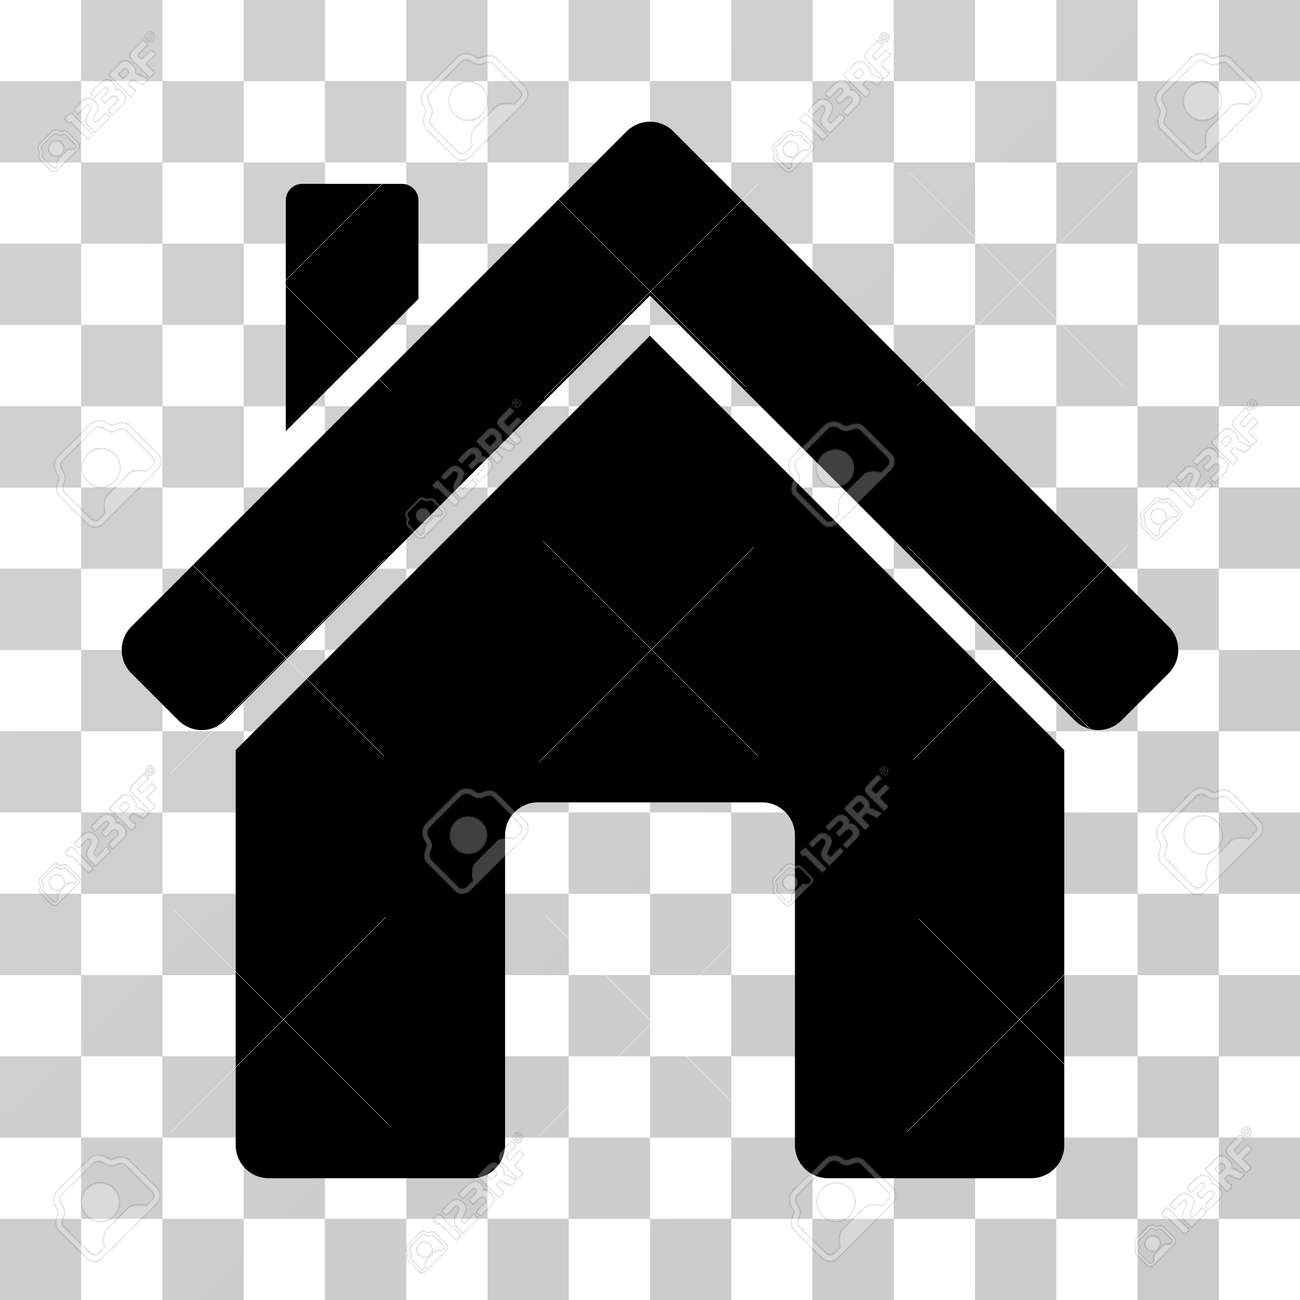 house icon vector illustration style is flat iconic symbol rh 123rf com house icon vector white house icon vector white